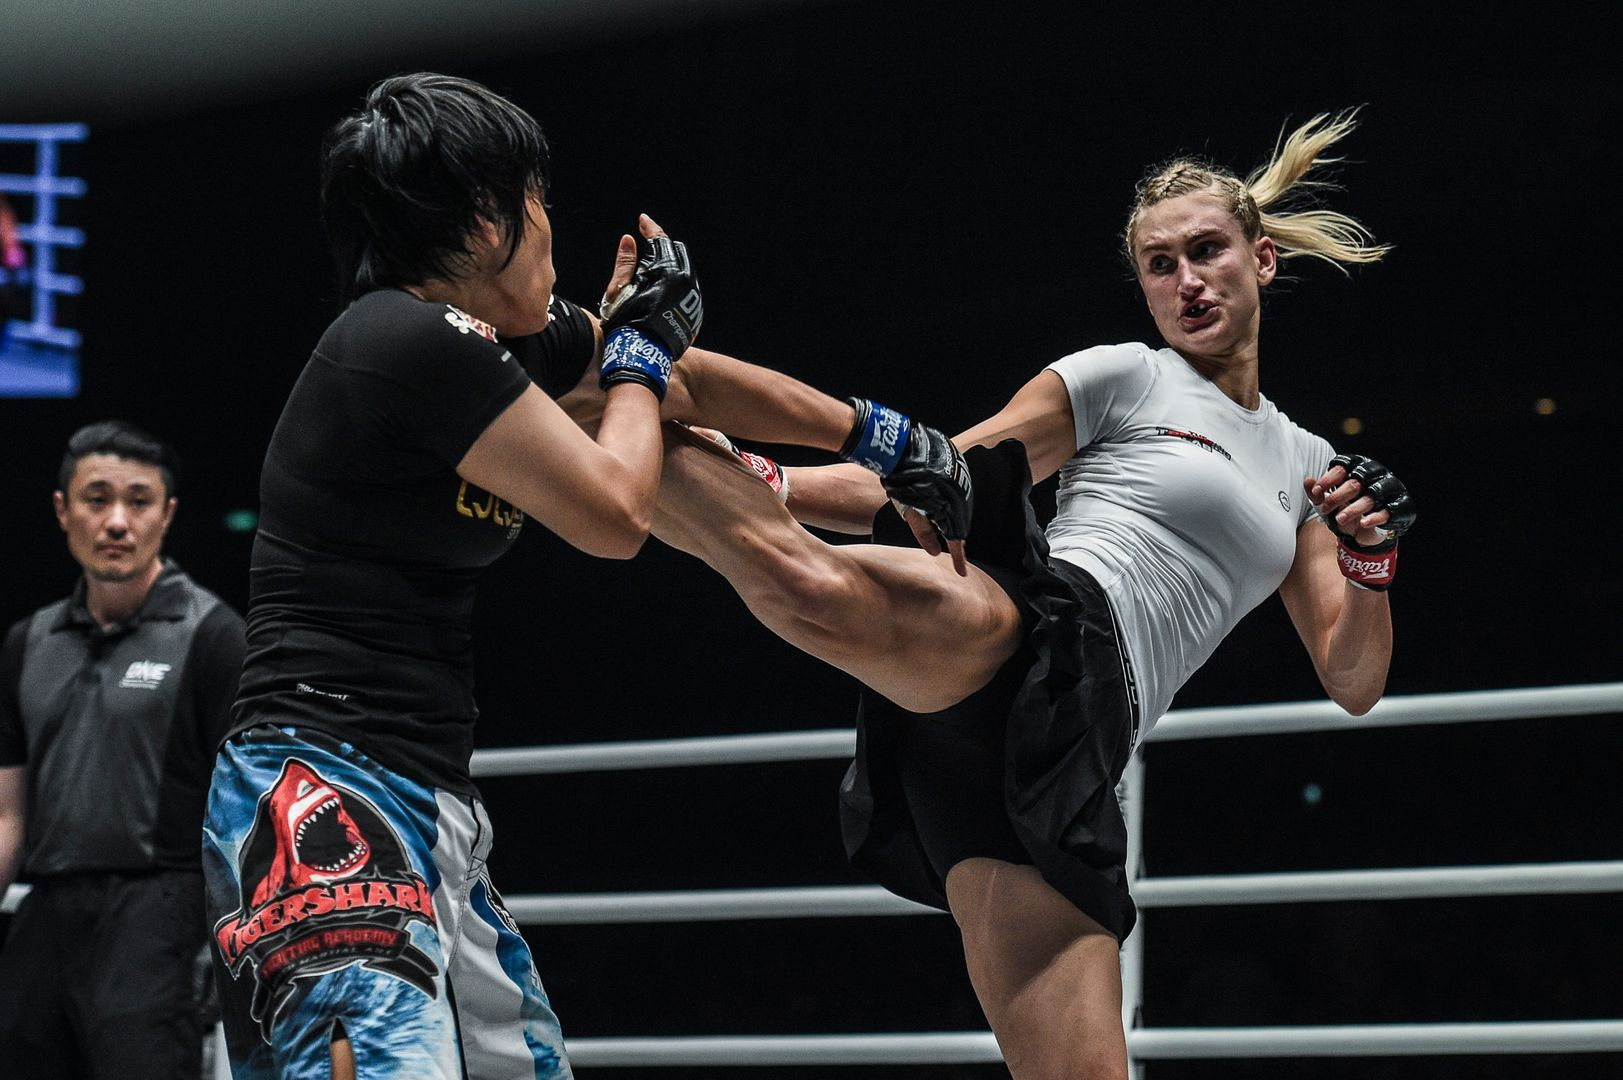 American MMA fighter Colbey Northcutt fires off a high kick against Putri Padmi at ONE: EDGE OF GREATNESS.